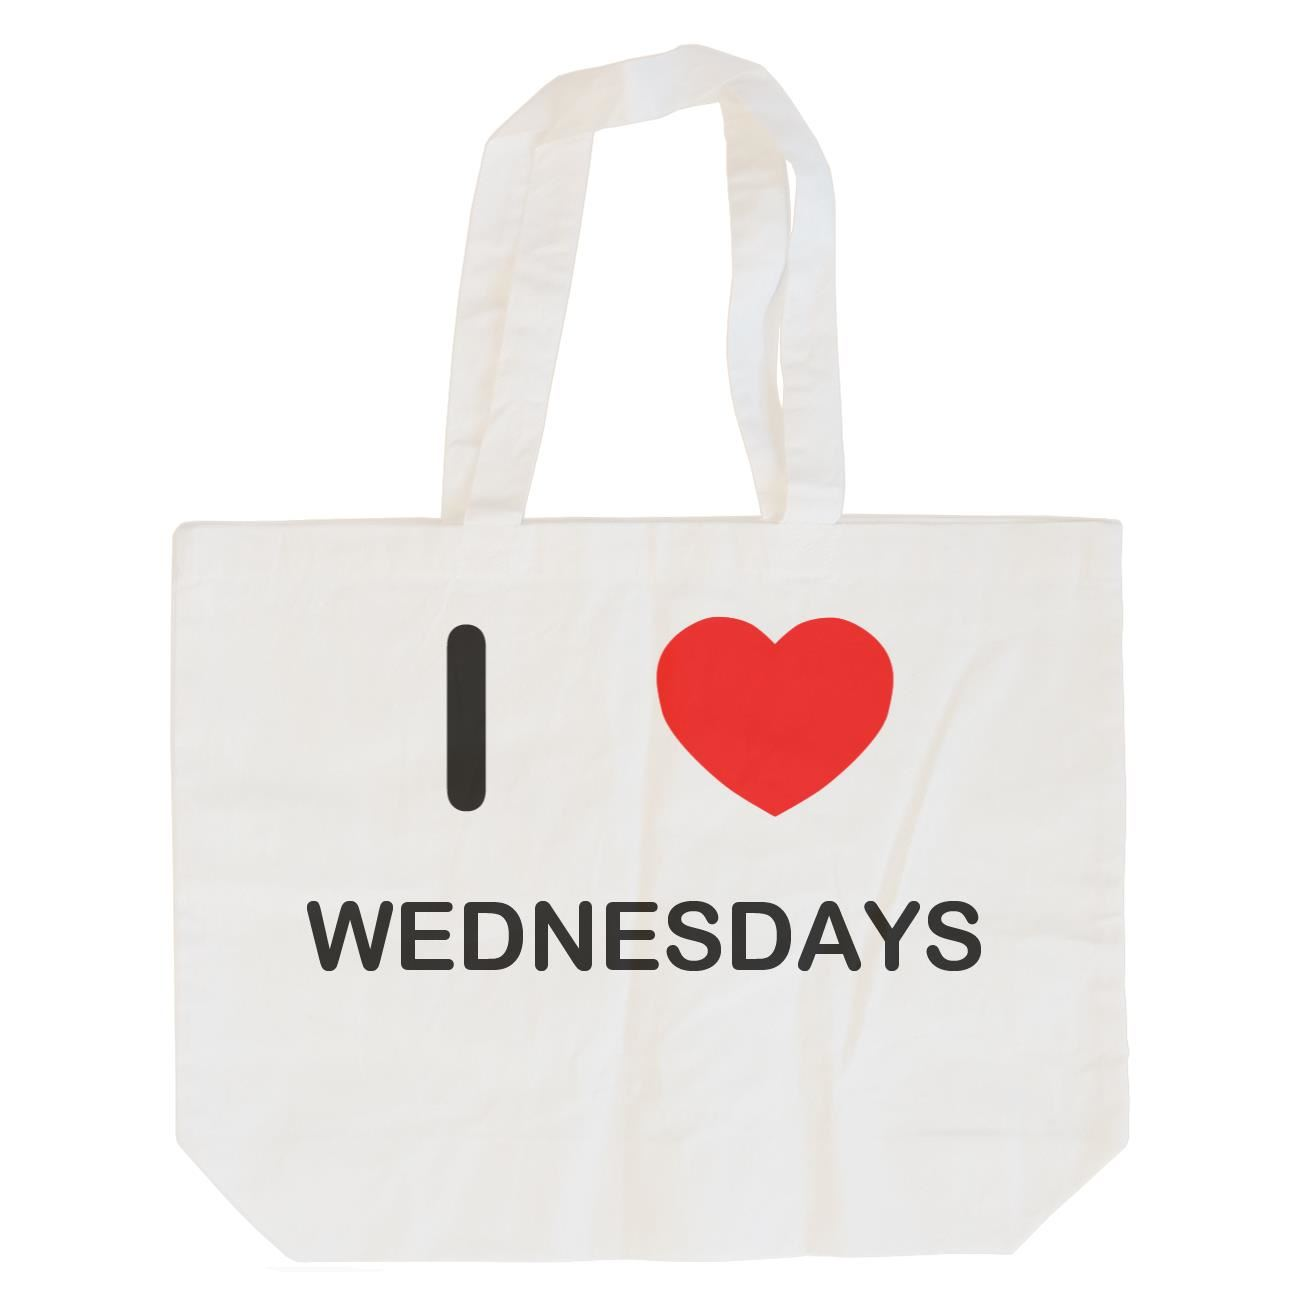 I Love Wednesdays - Cotton Bag | Size choice Tote, Shopper or Sling